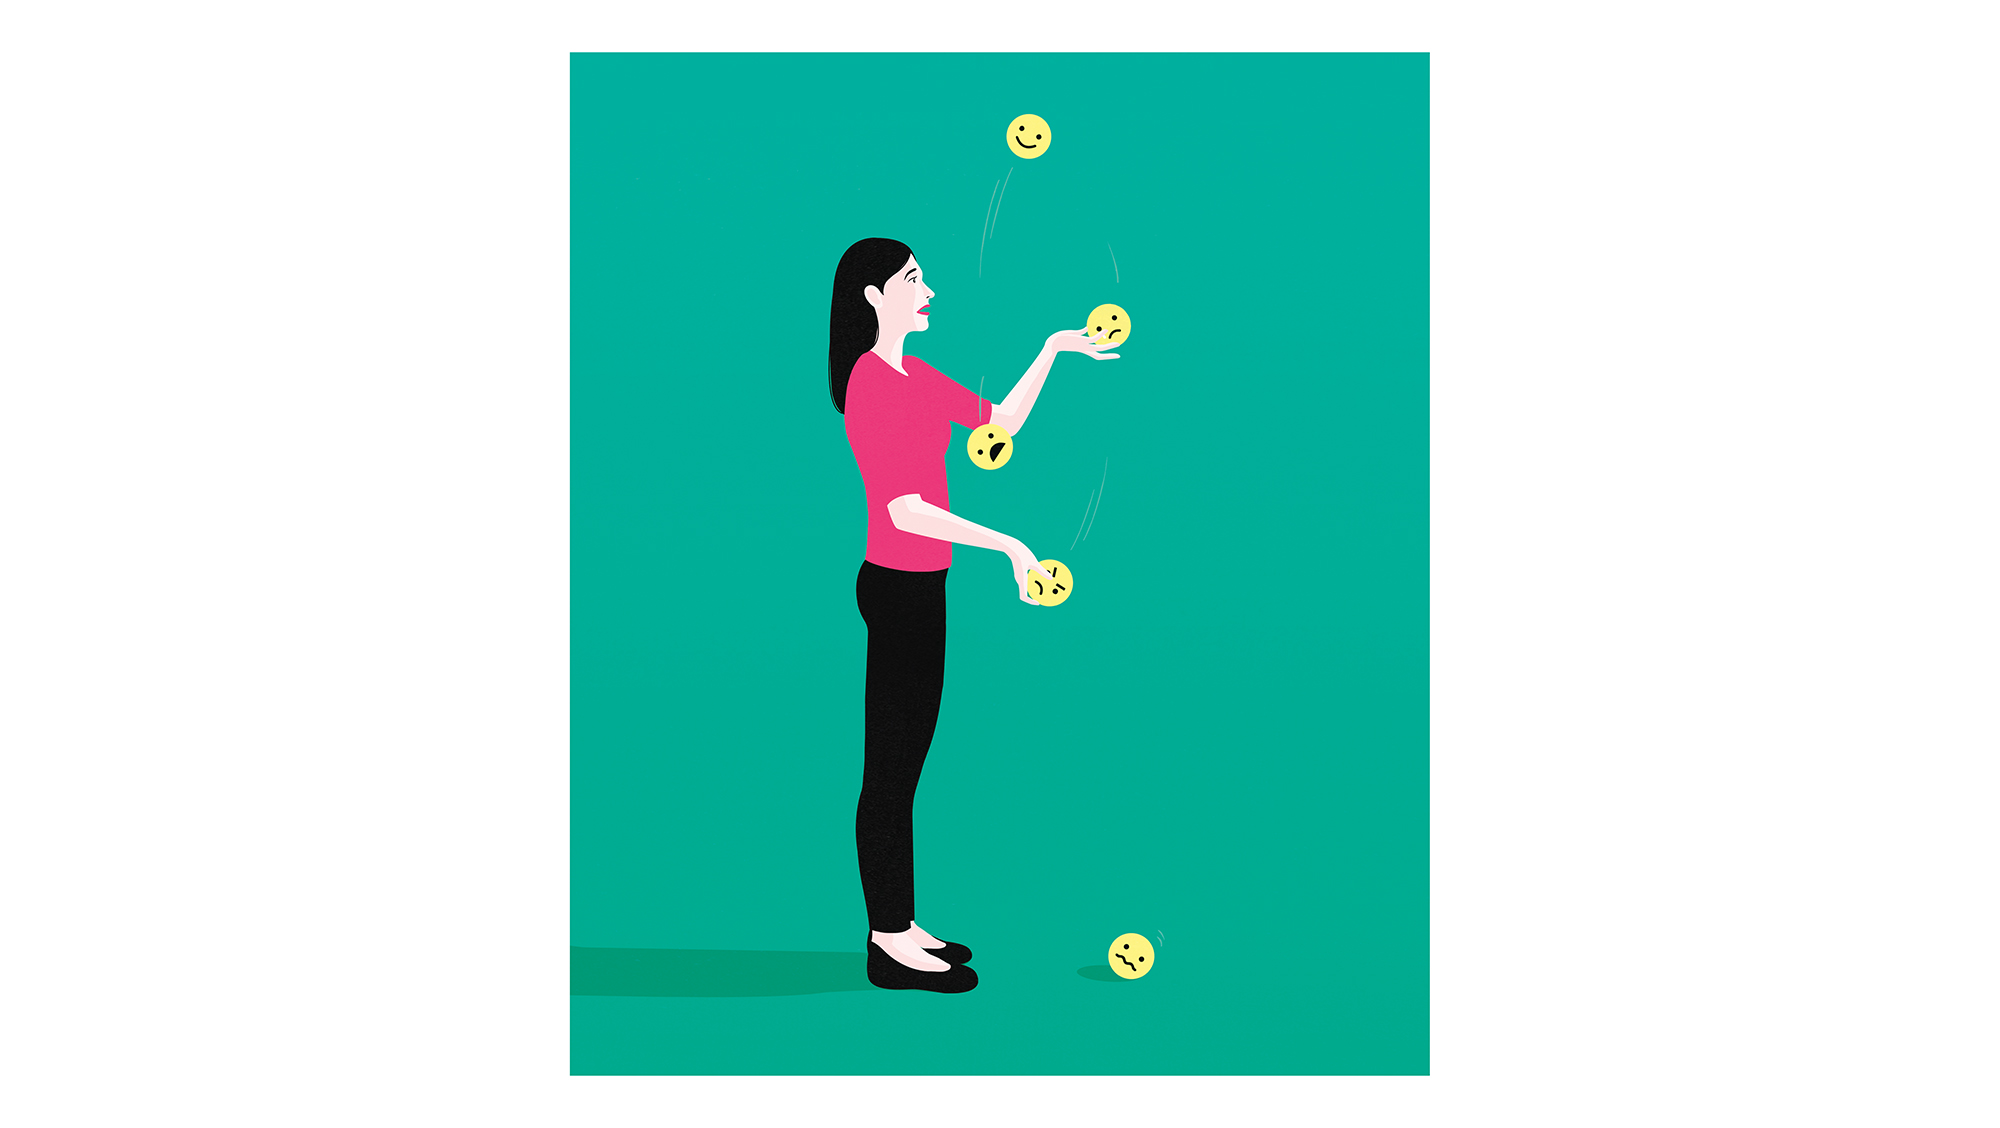 Illustration: woman juggling emojis